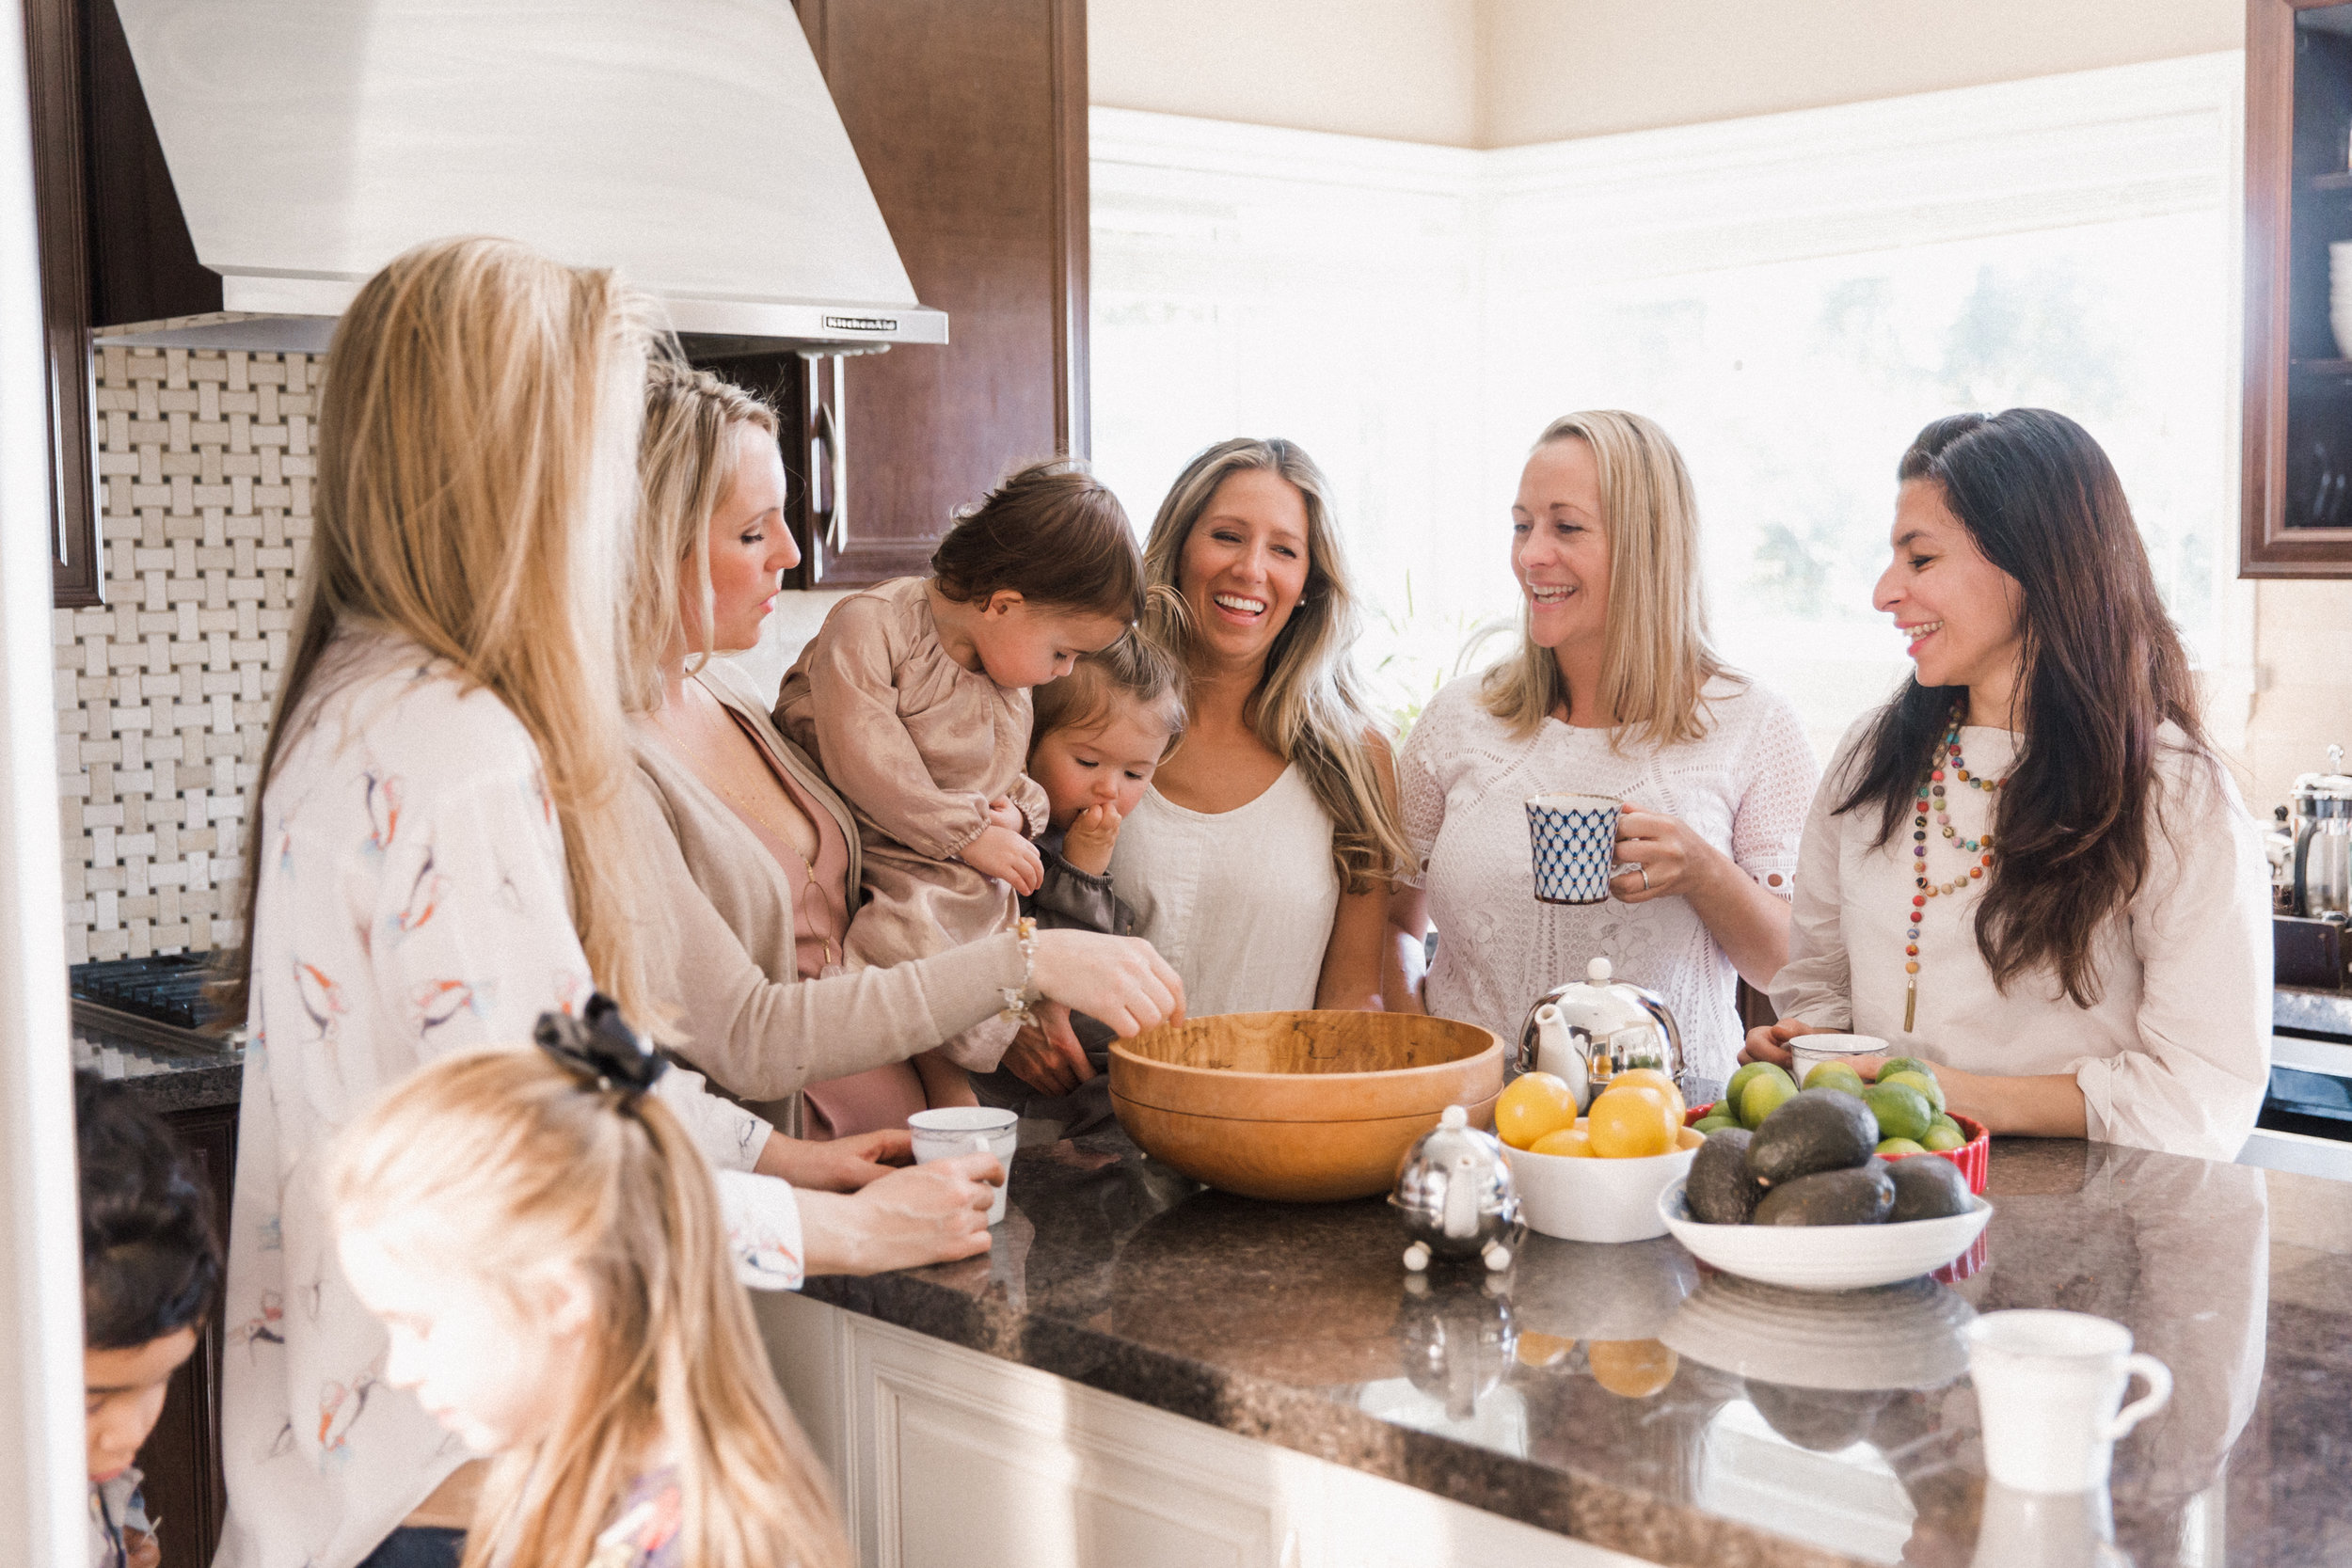 TRYBE Wellness Membership - If you're looking for more great tips, nutritious recipes and just helping support your family through new routines and transitions, our TRYBE Wellness Membership includes exclusive recipes tips from expert health and wellness practitioners.